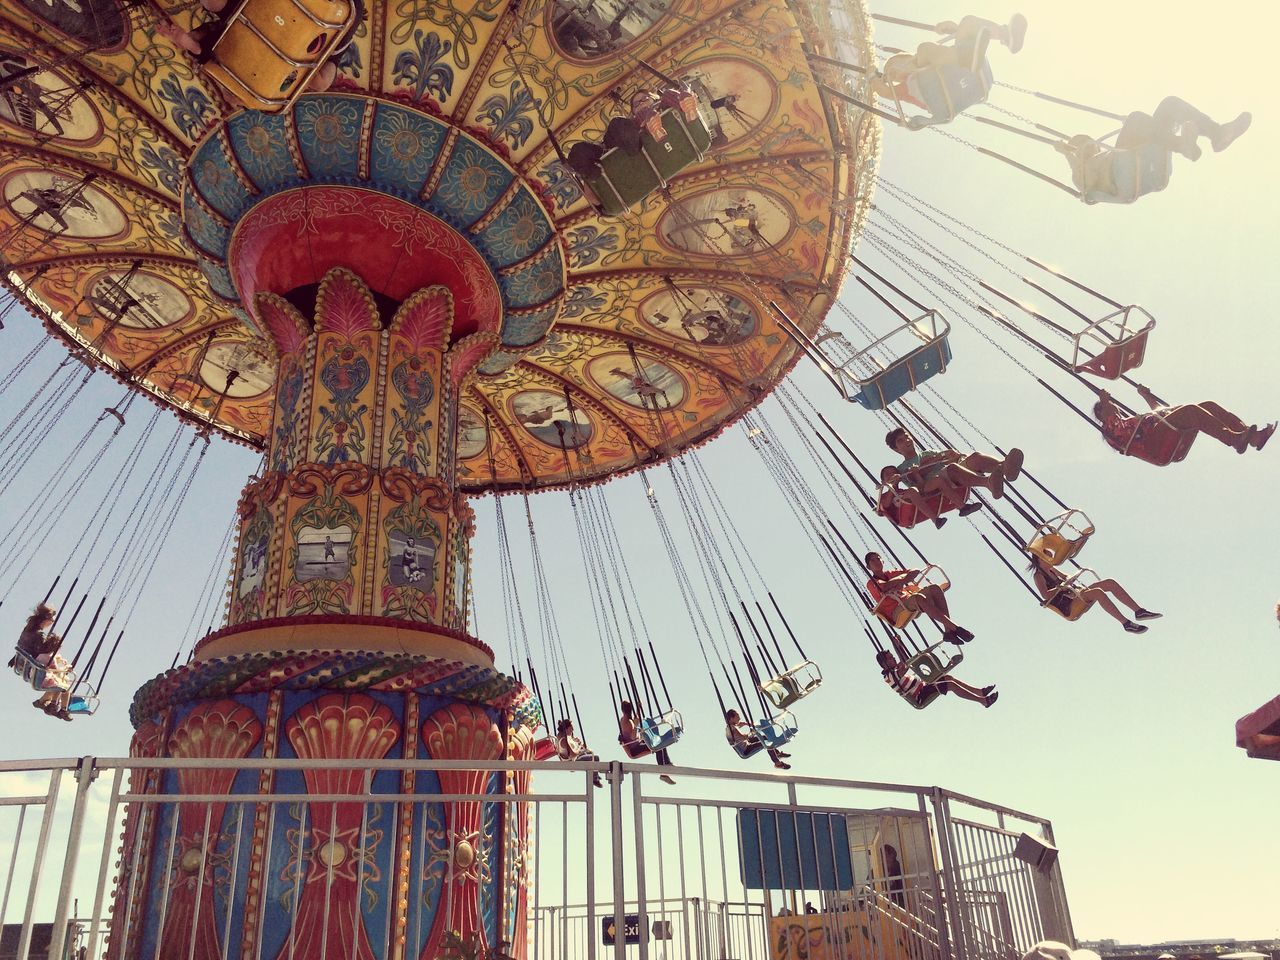 Low angle view of people enjoying carousel against sky